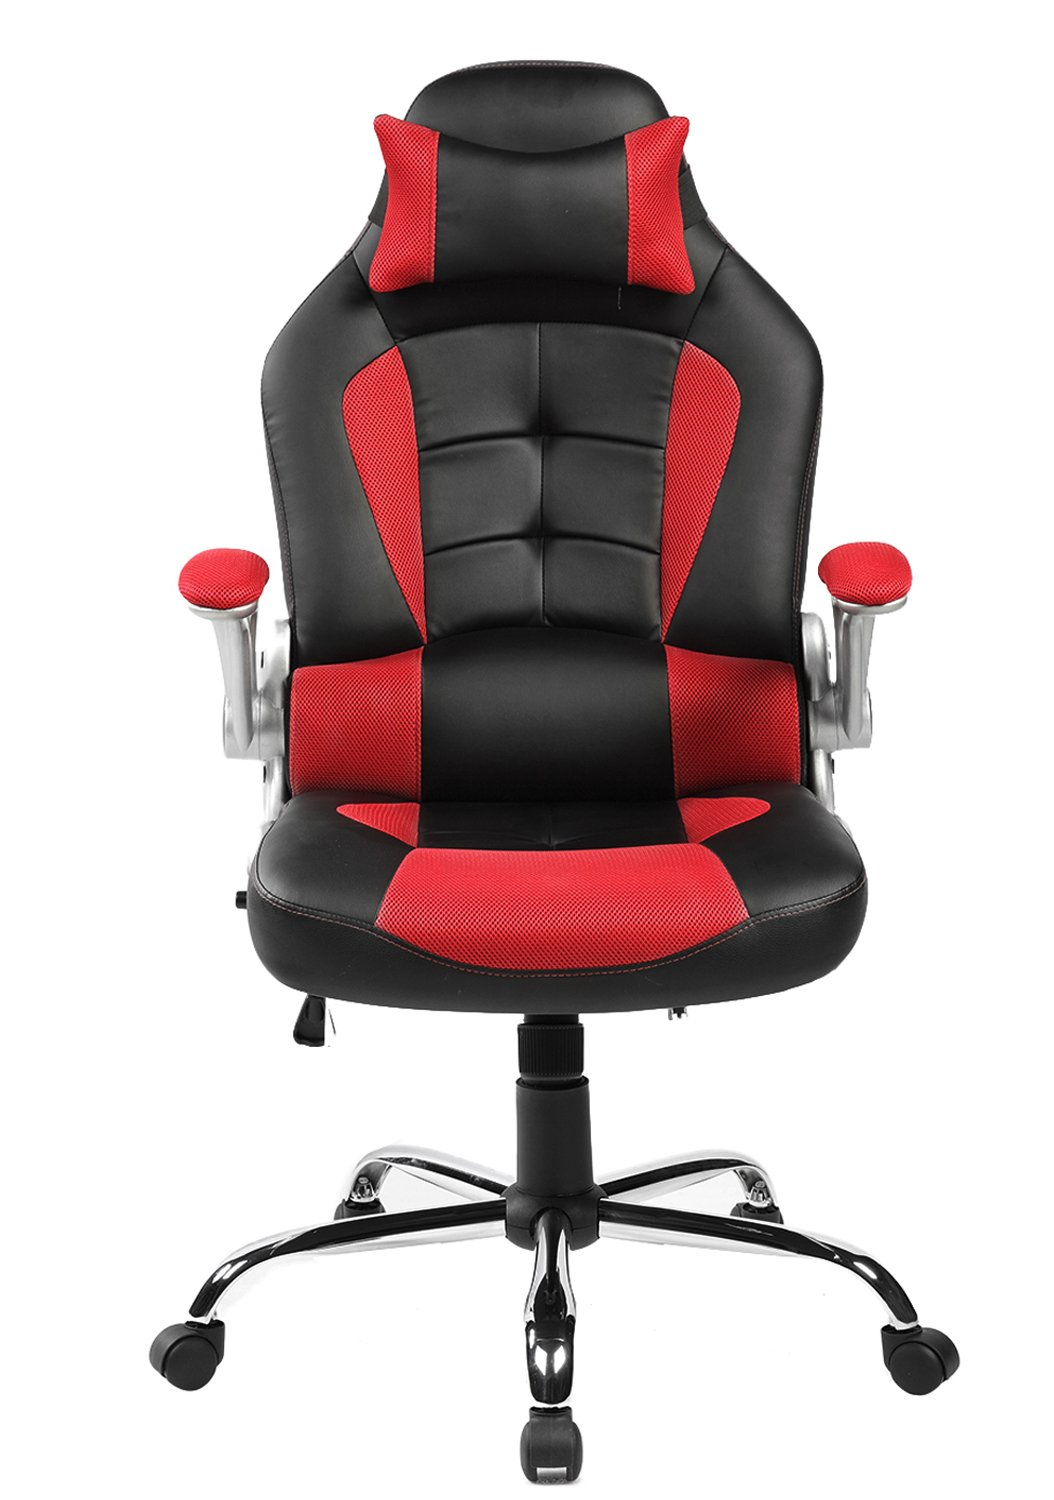 Amazon.com Merax High-Back Ergonomic Pu Leather Office Chair Racing Style Swivel Chair Computer Desk Lumbar Support Chair Napping Chair Kitchen u0026 Dining  sc 1 st  Amazon.com & Amazon.com: Merax High-Back Ergonomic Pu Leather Office Chair ... islam-shia.org